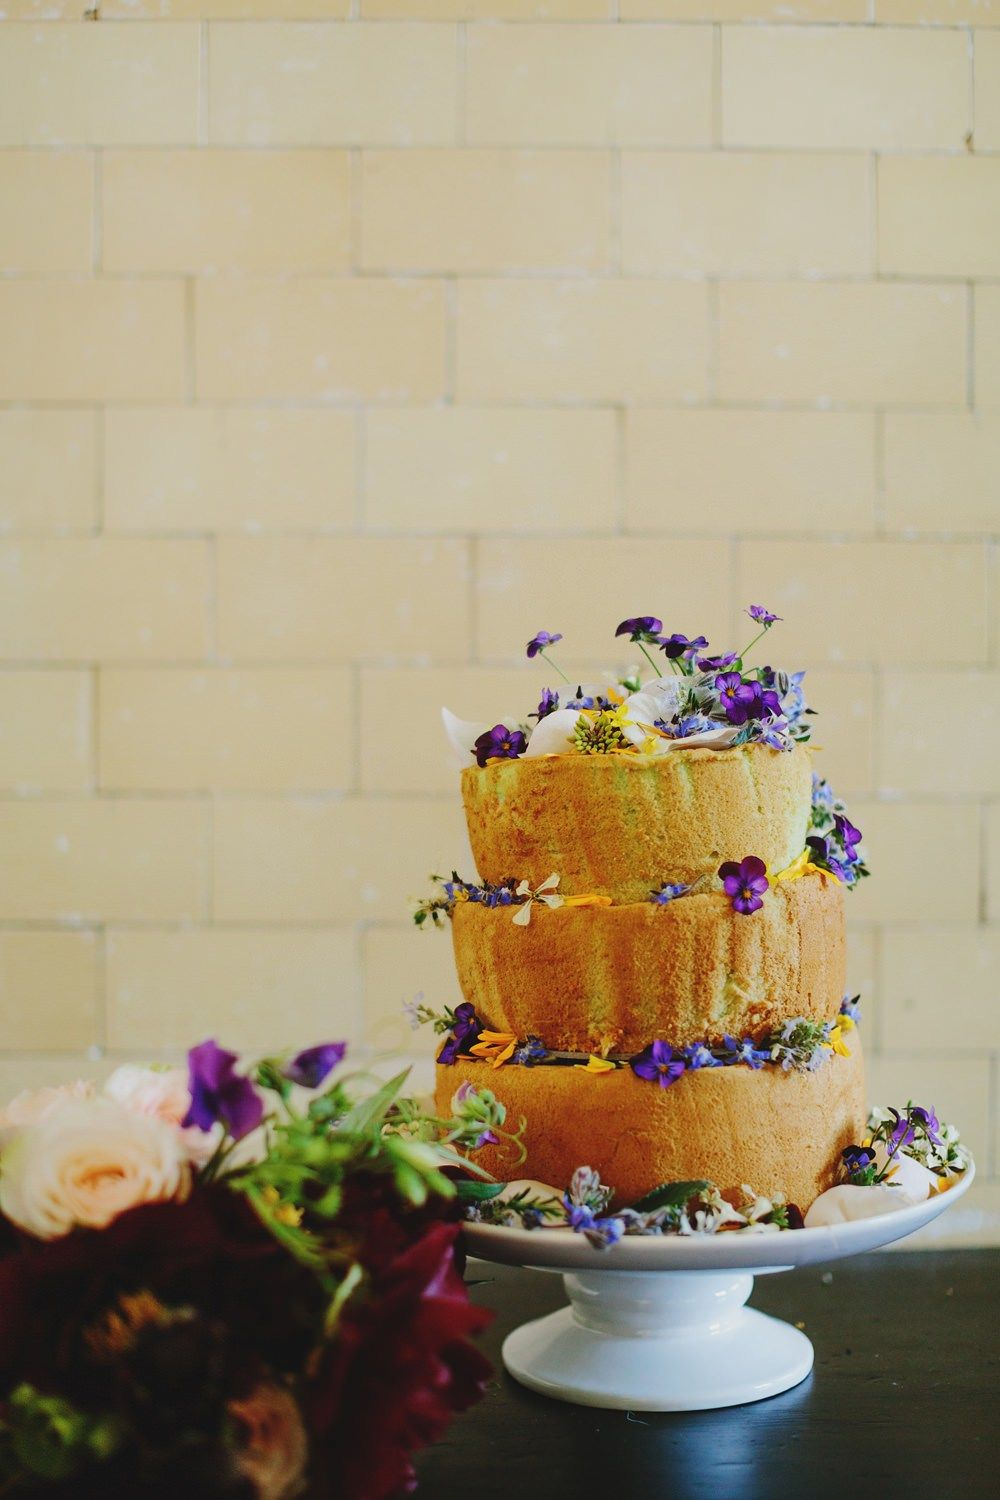 three-tiered Malaysian pandan (screwpine leaf extract) coconut chiffon cake decorated with pansies and violas | fabmood.com #wedding #rusticwedding #factorywedding